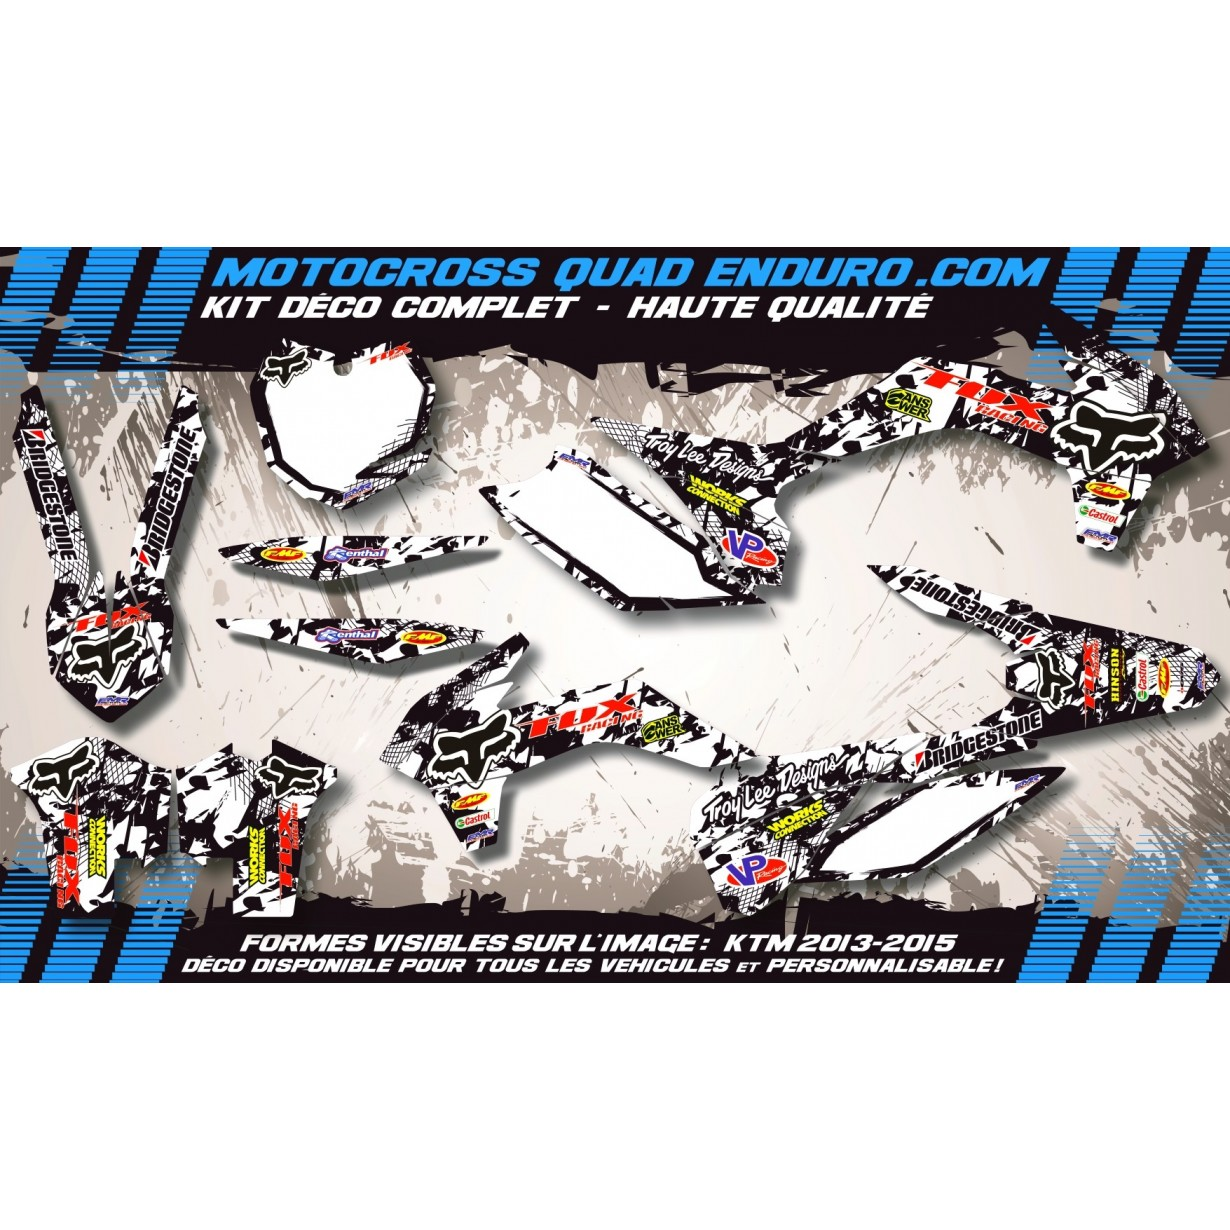 KIT DÉCO Perso 250 RMZ 10-15 FOX MA9F